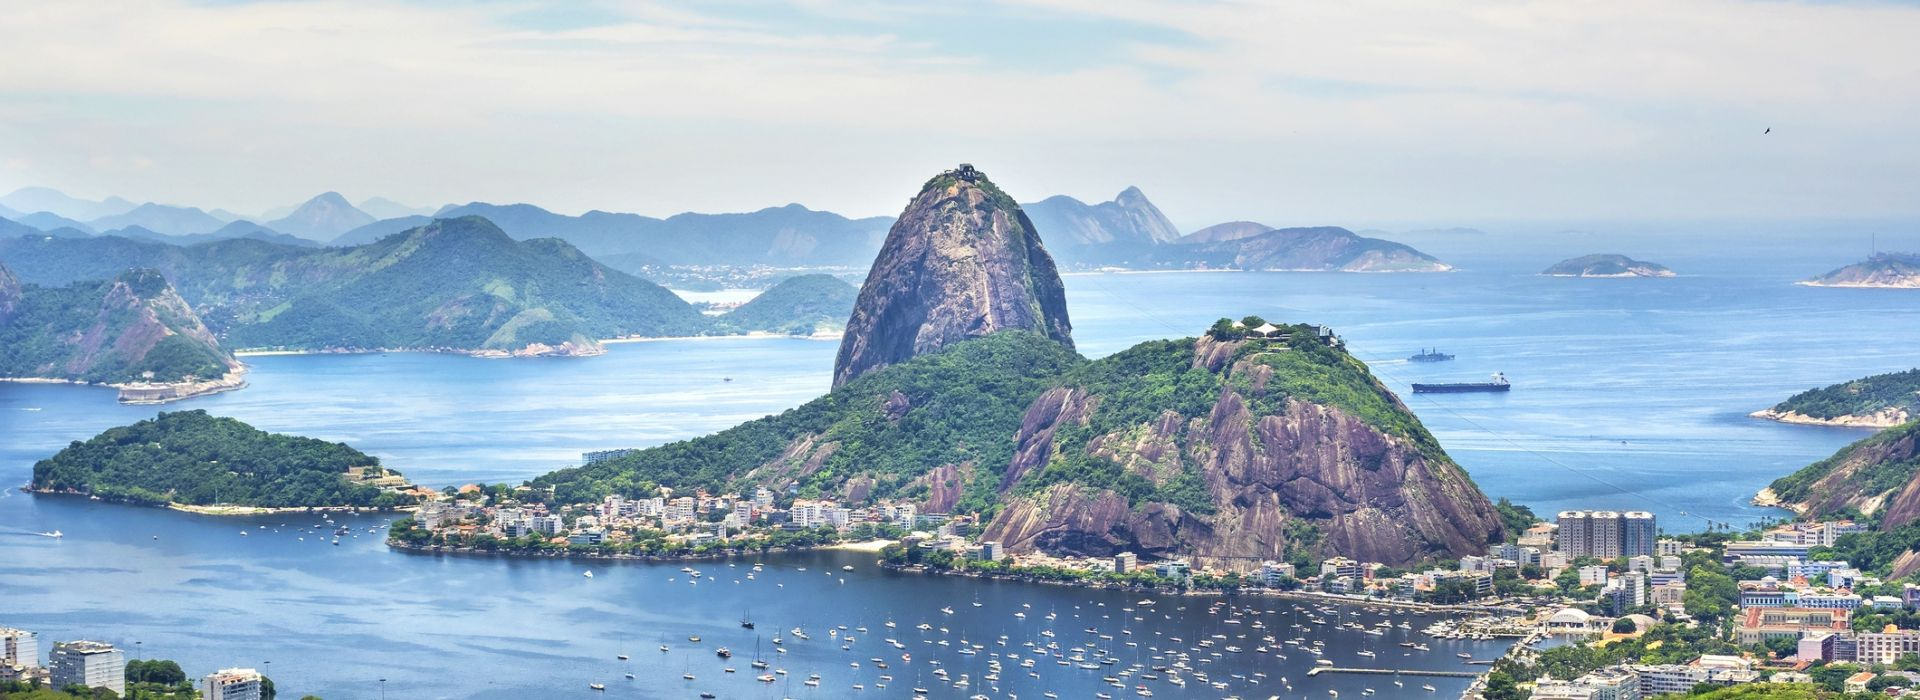 16 last minute holidays and travel deals to brazil bookmundi